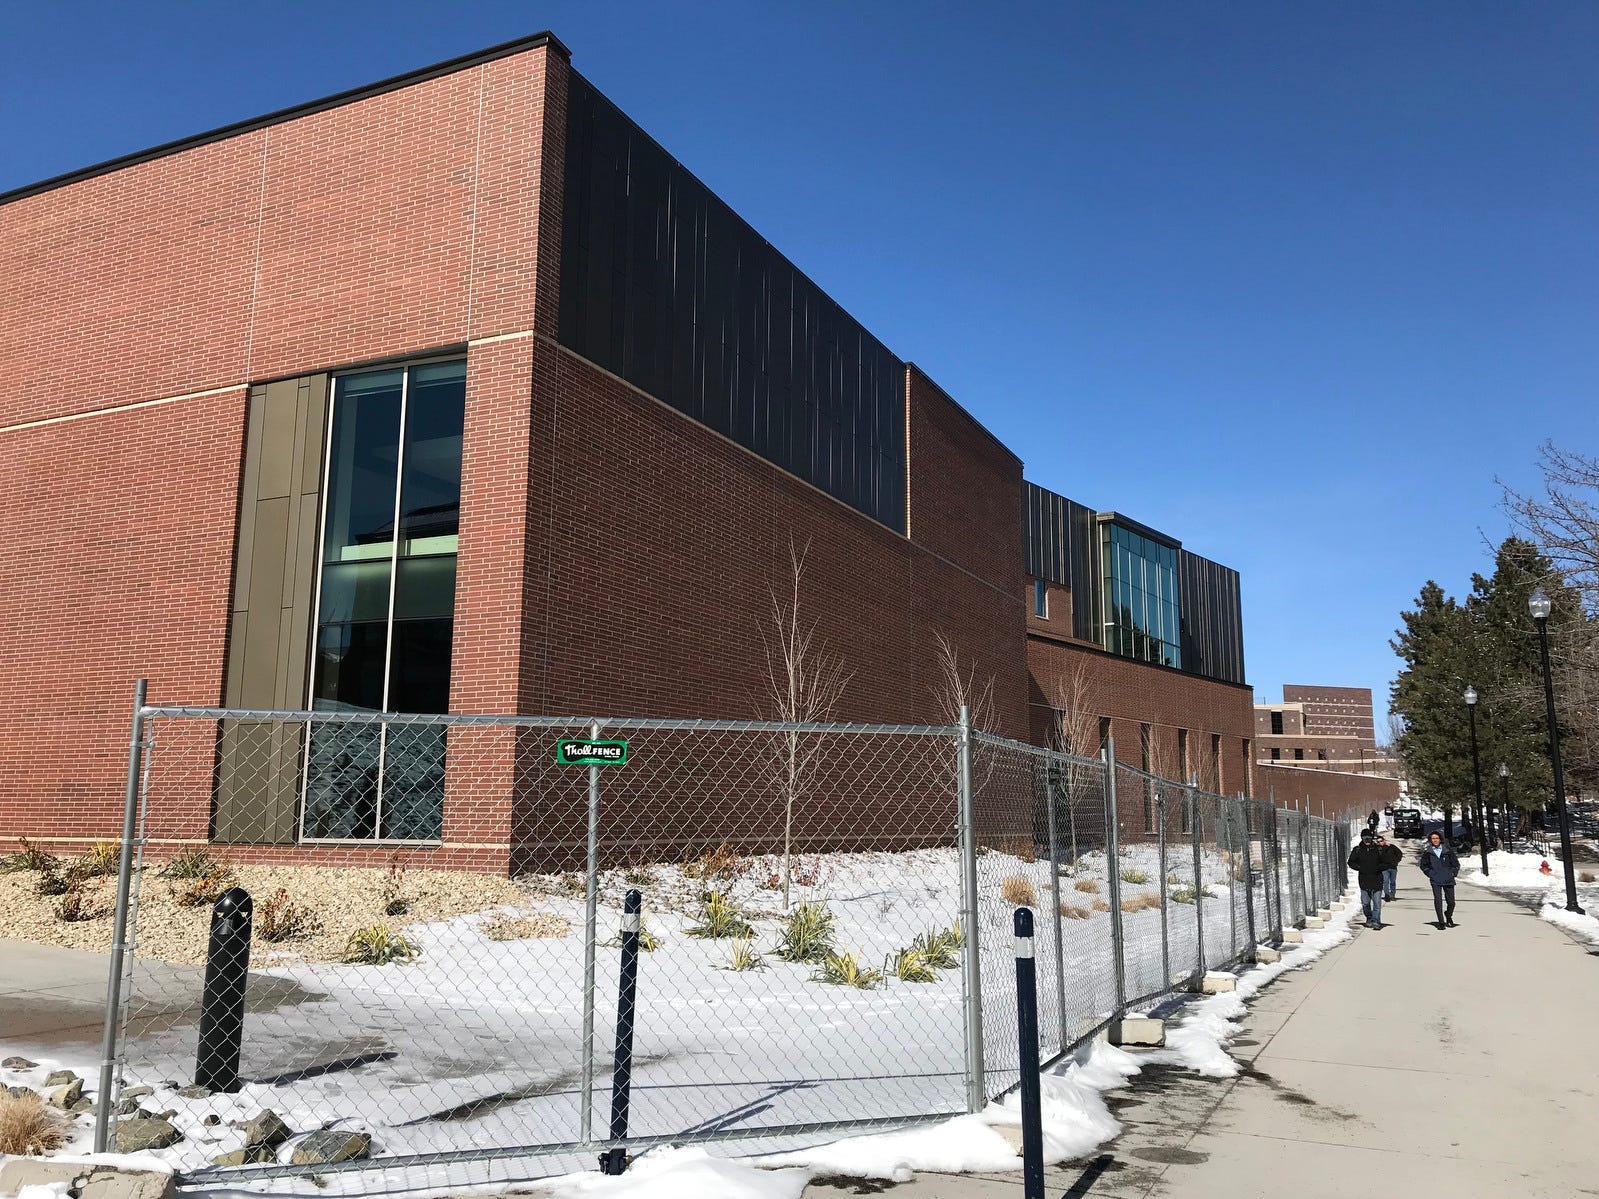 The new University Arts Building on the campus of the University of Nevada, Reno on Feb. 19, 2019.